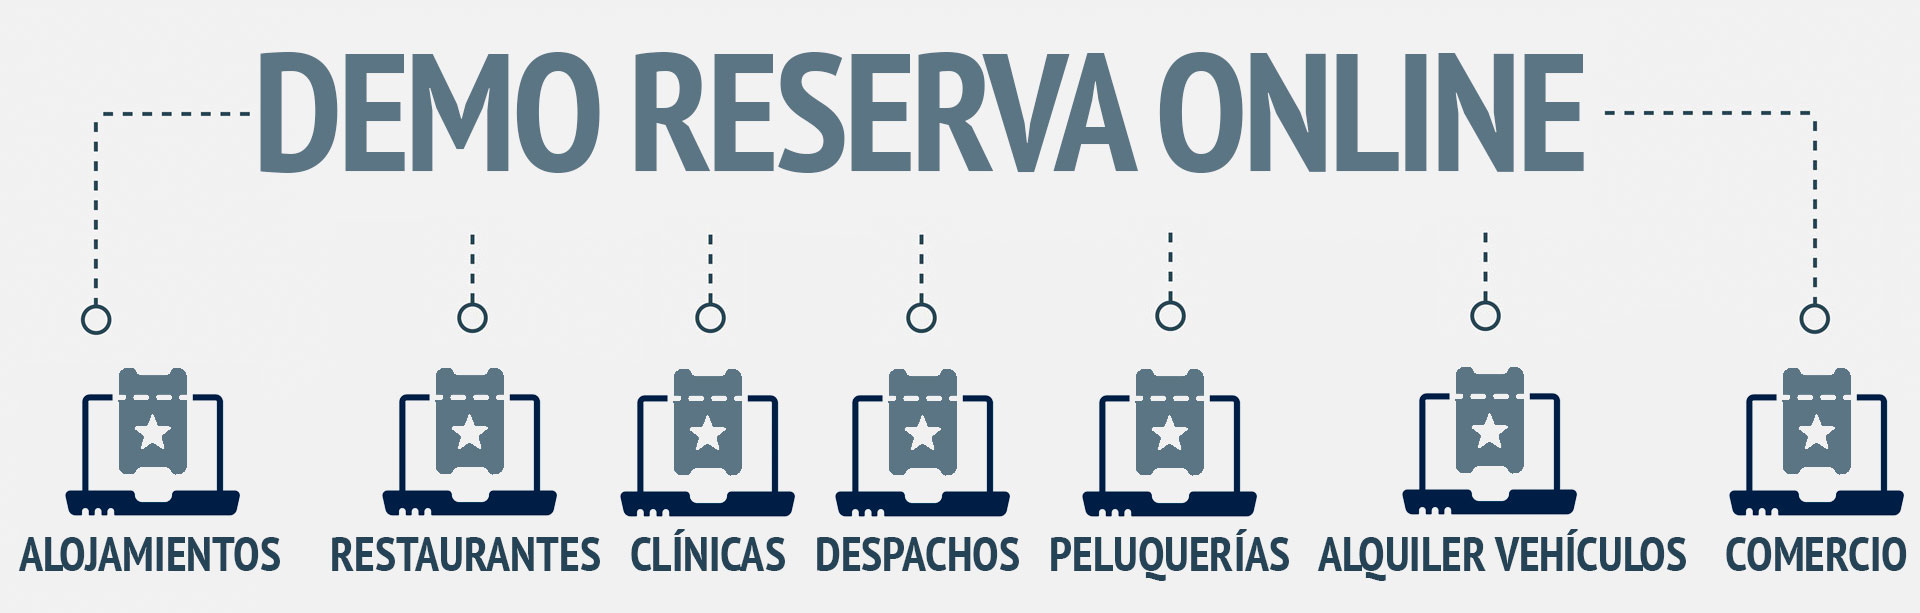 demo-reserva-on-line-cita-previa